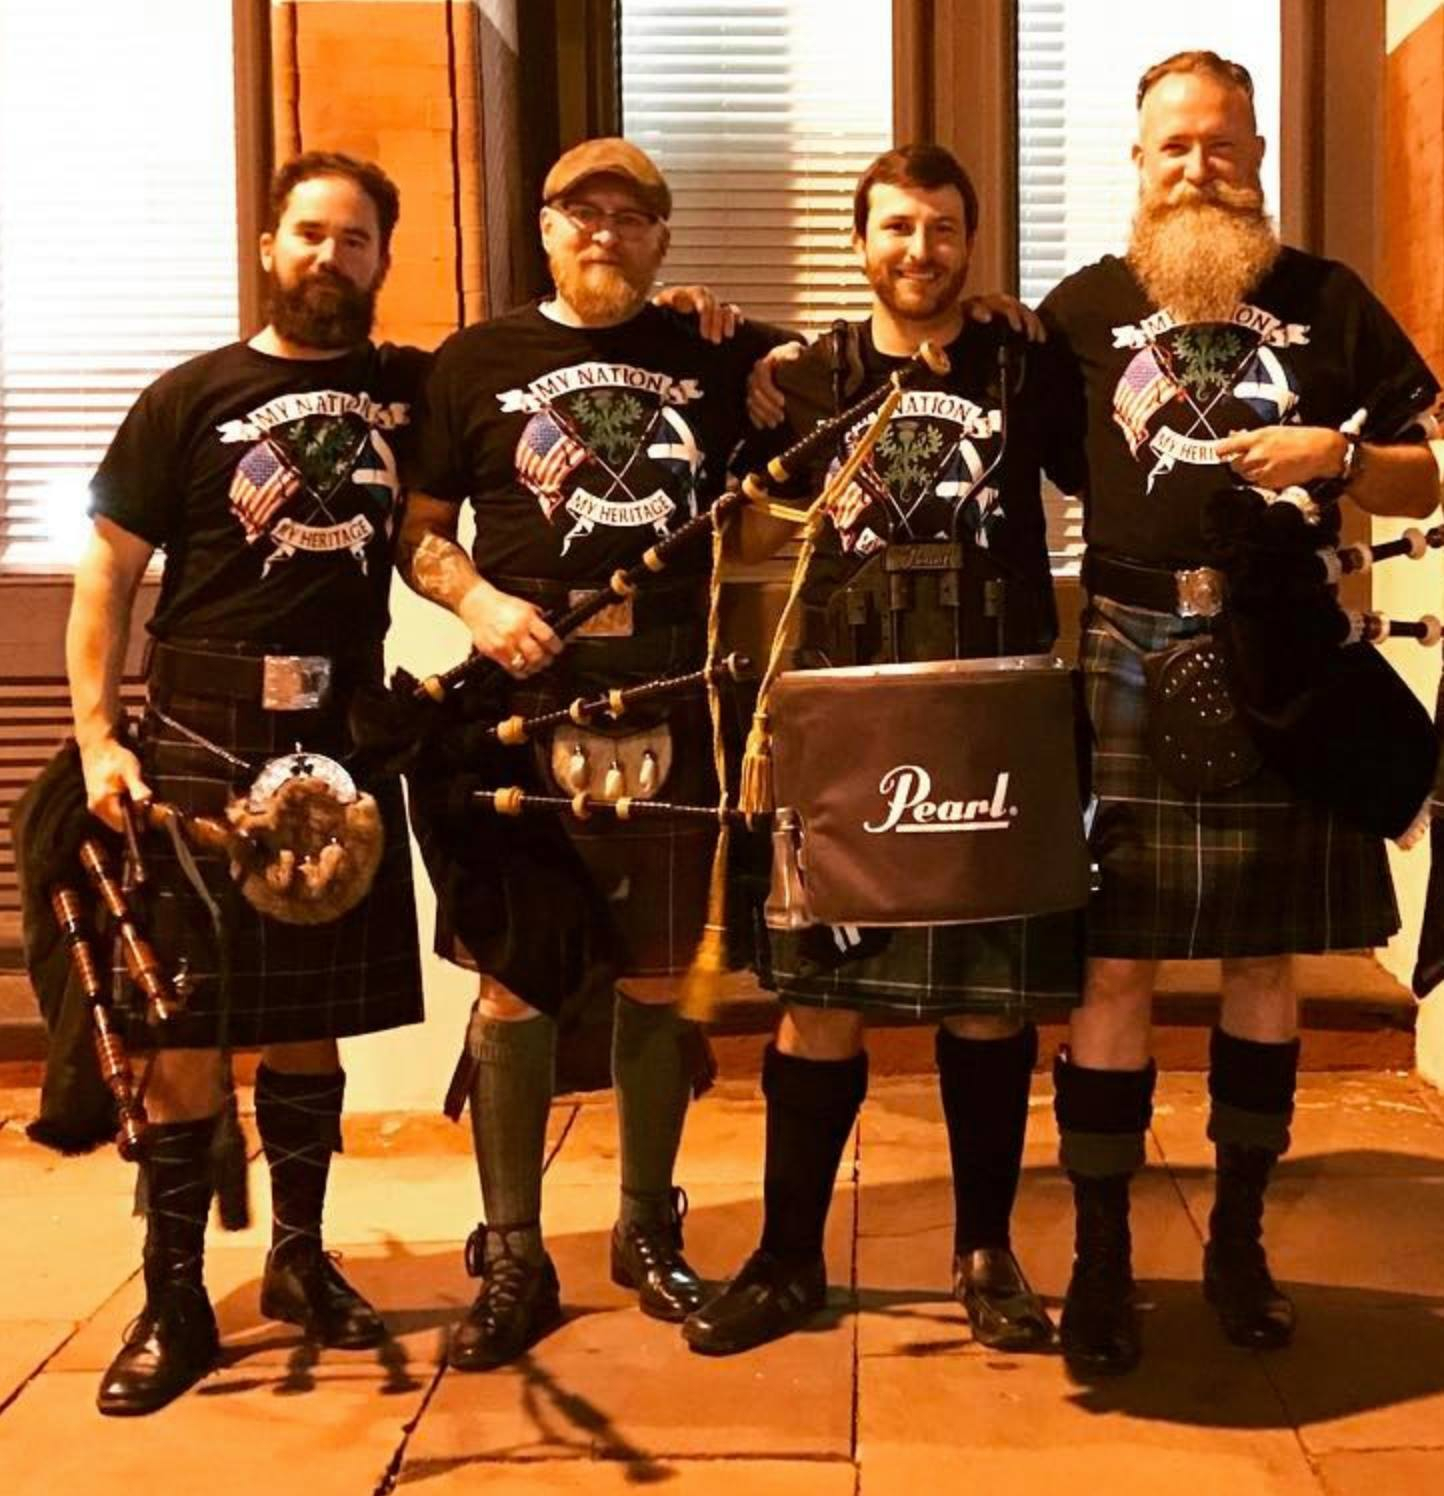 Bobby Hoyt playing drums in a kilt on St. Patrick's Day